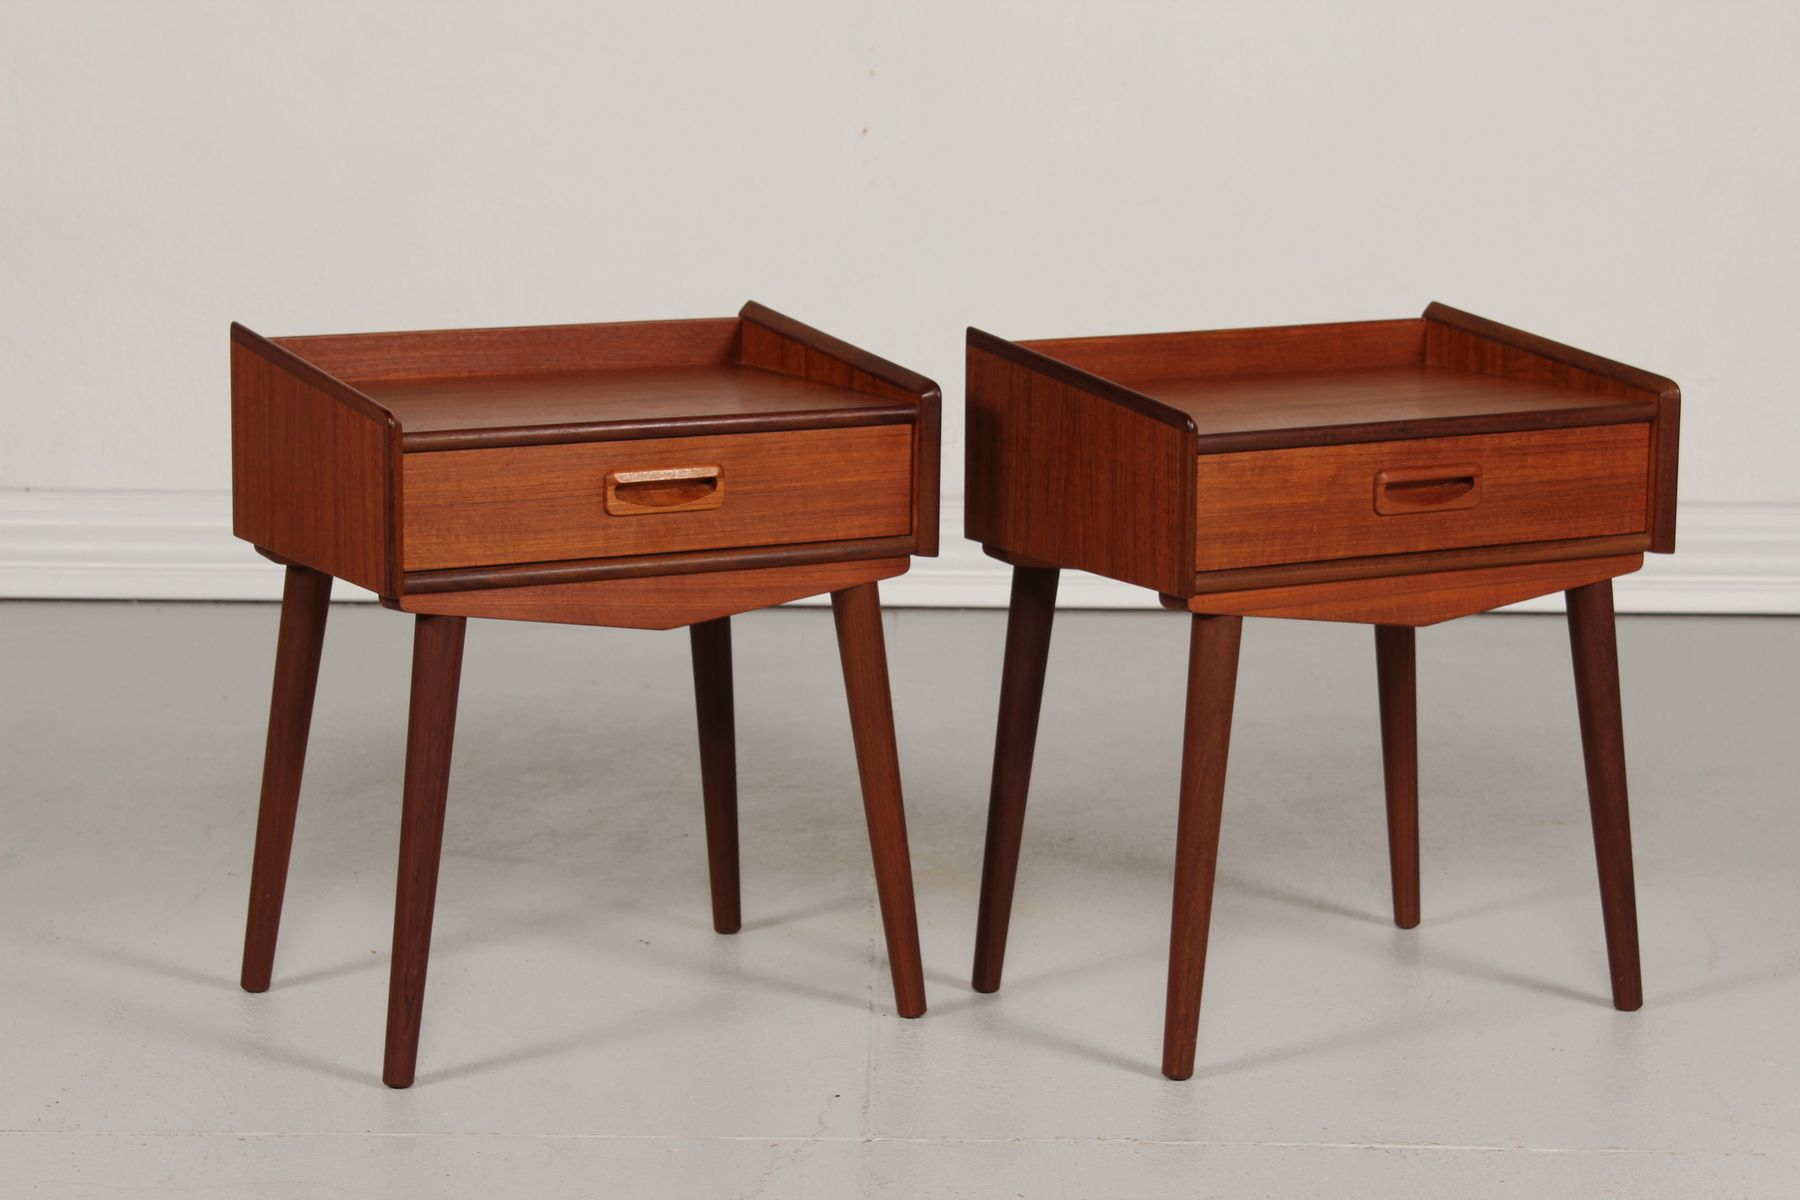 Danish Bedside Table Danish Bedside Tables 1950s Set Of 2 For Sale At Pamono